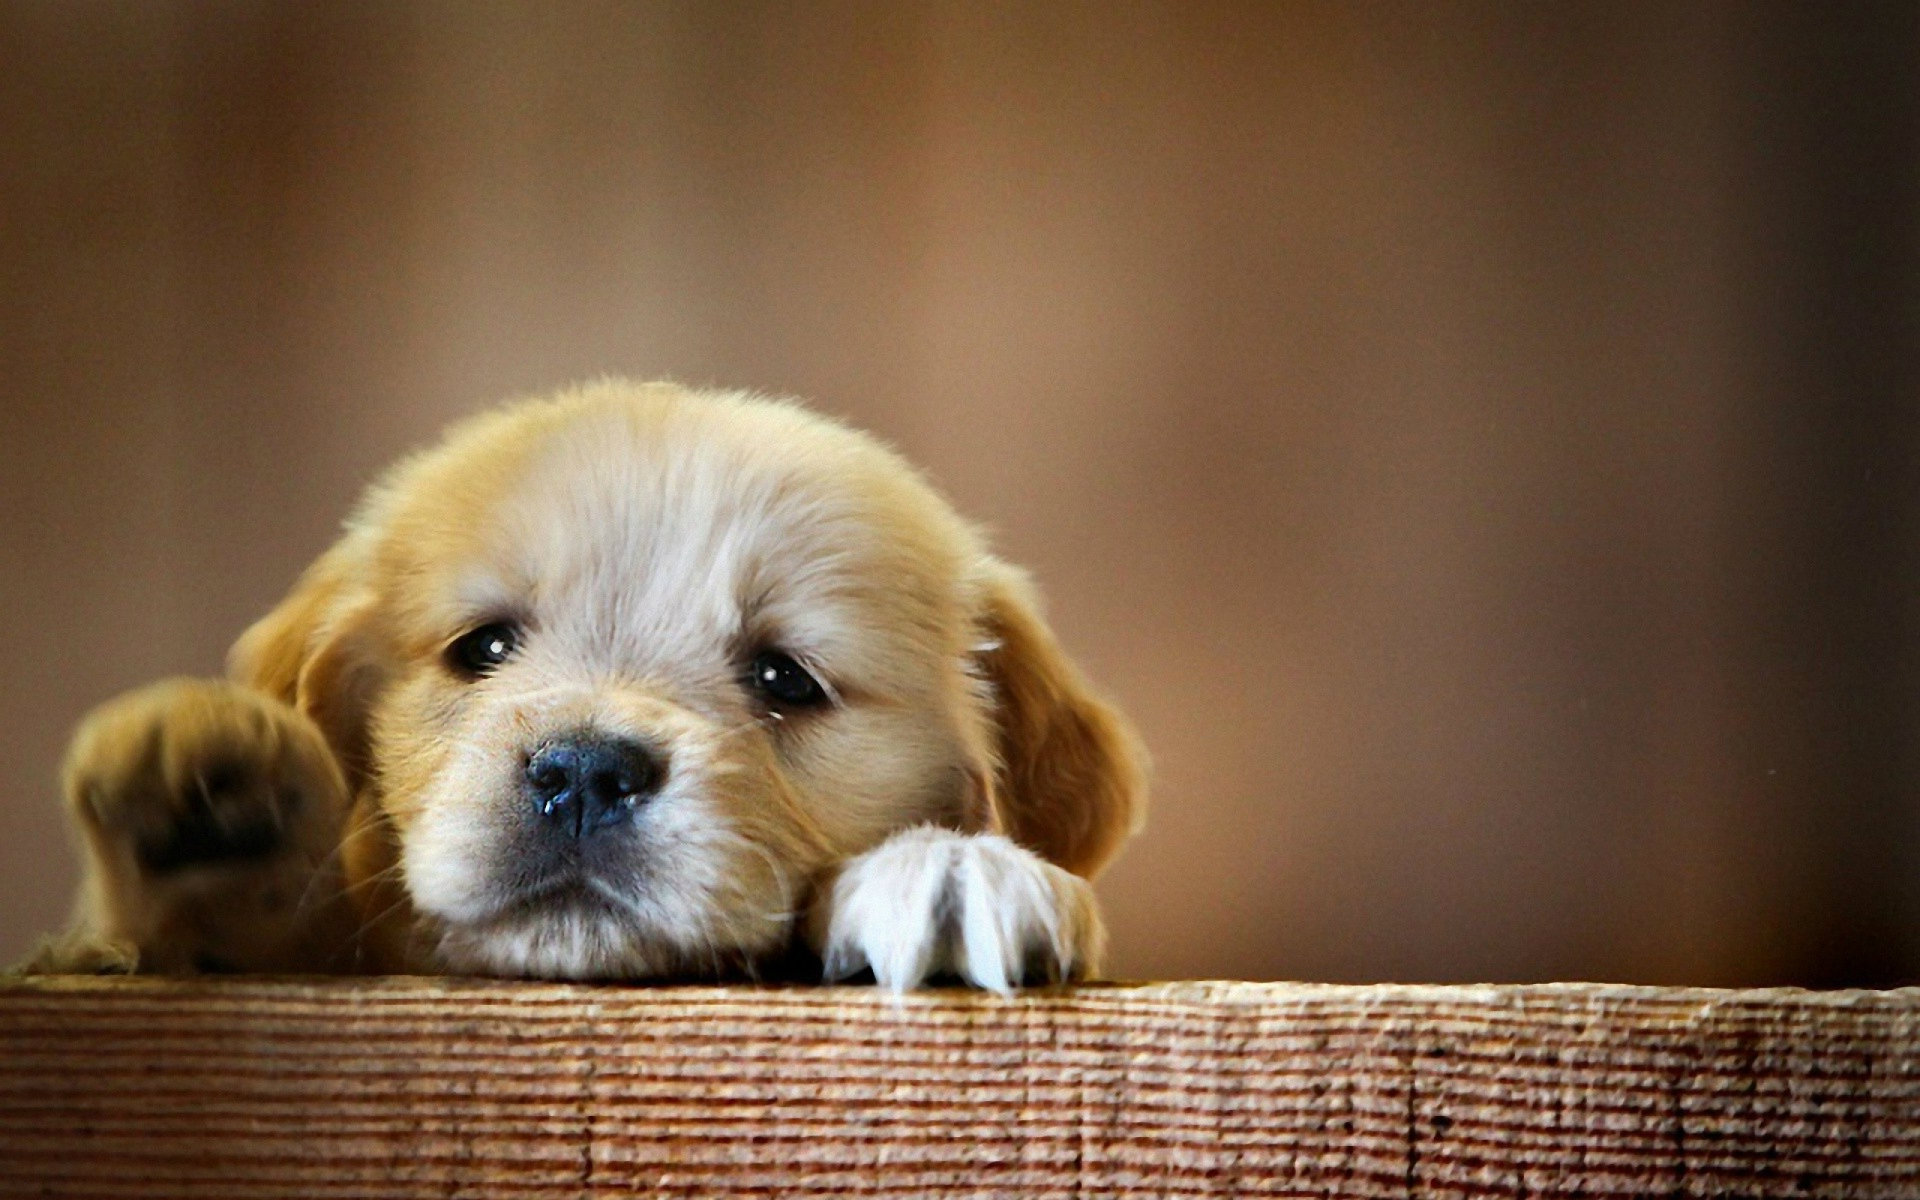 Download 50 Cute Dogs Wallpapers Dog Puppy Desktop Wallpapers